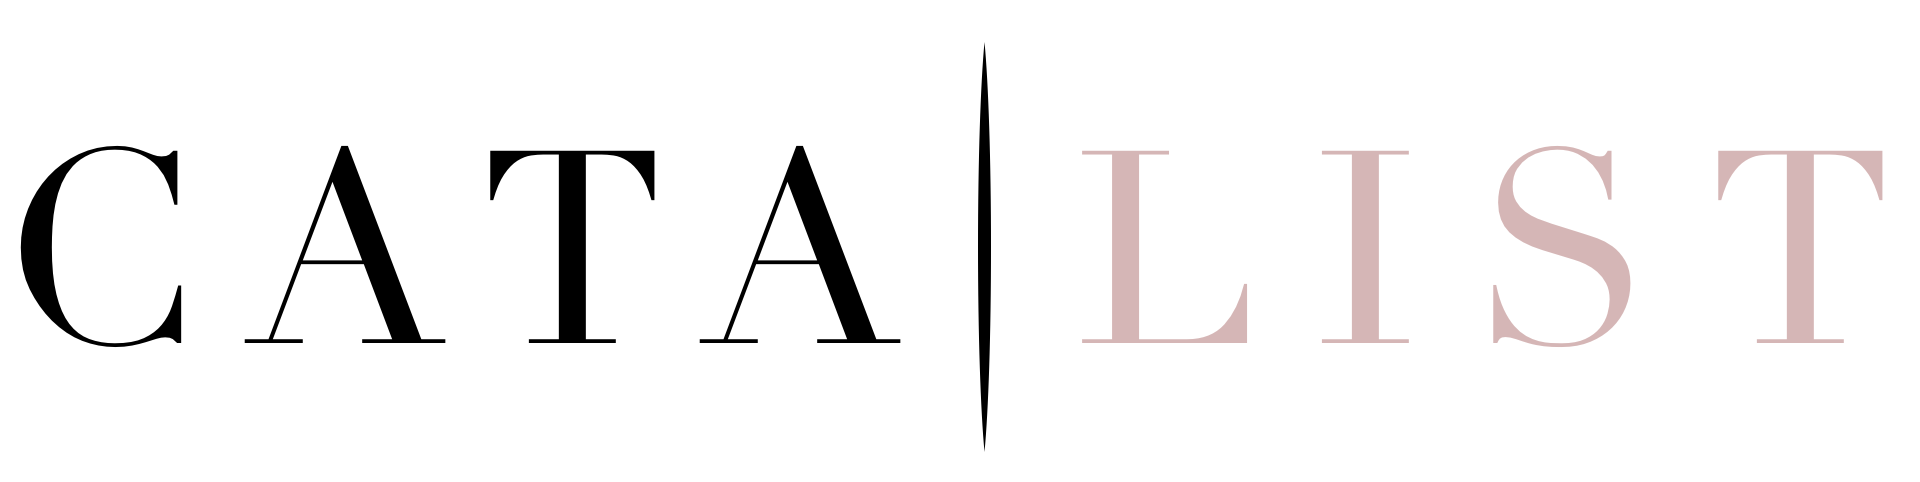 catalist logo.png